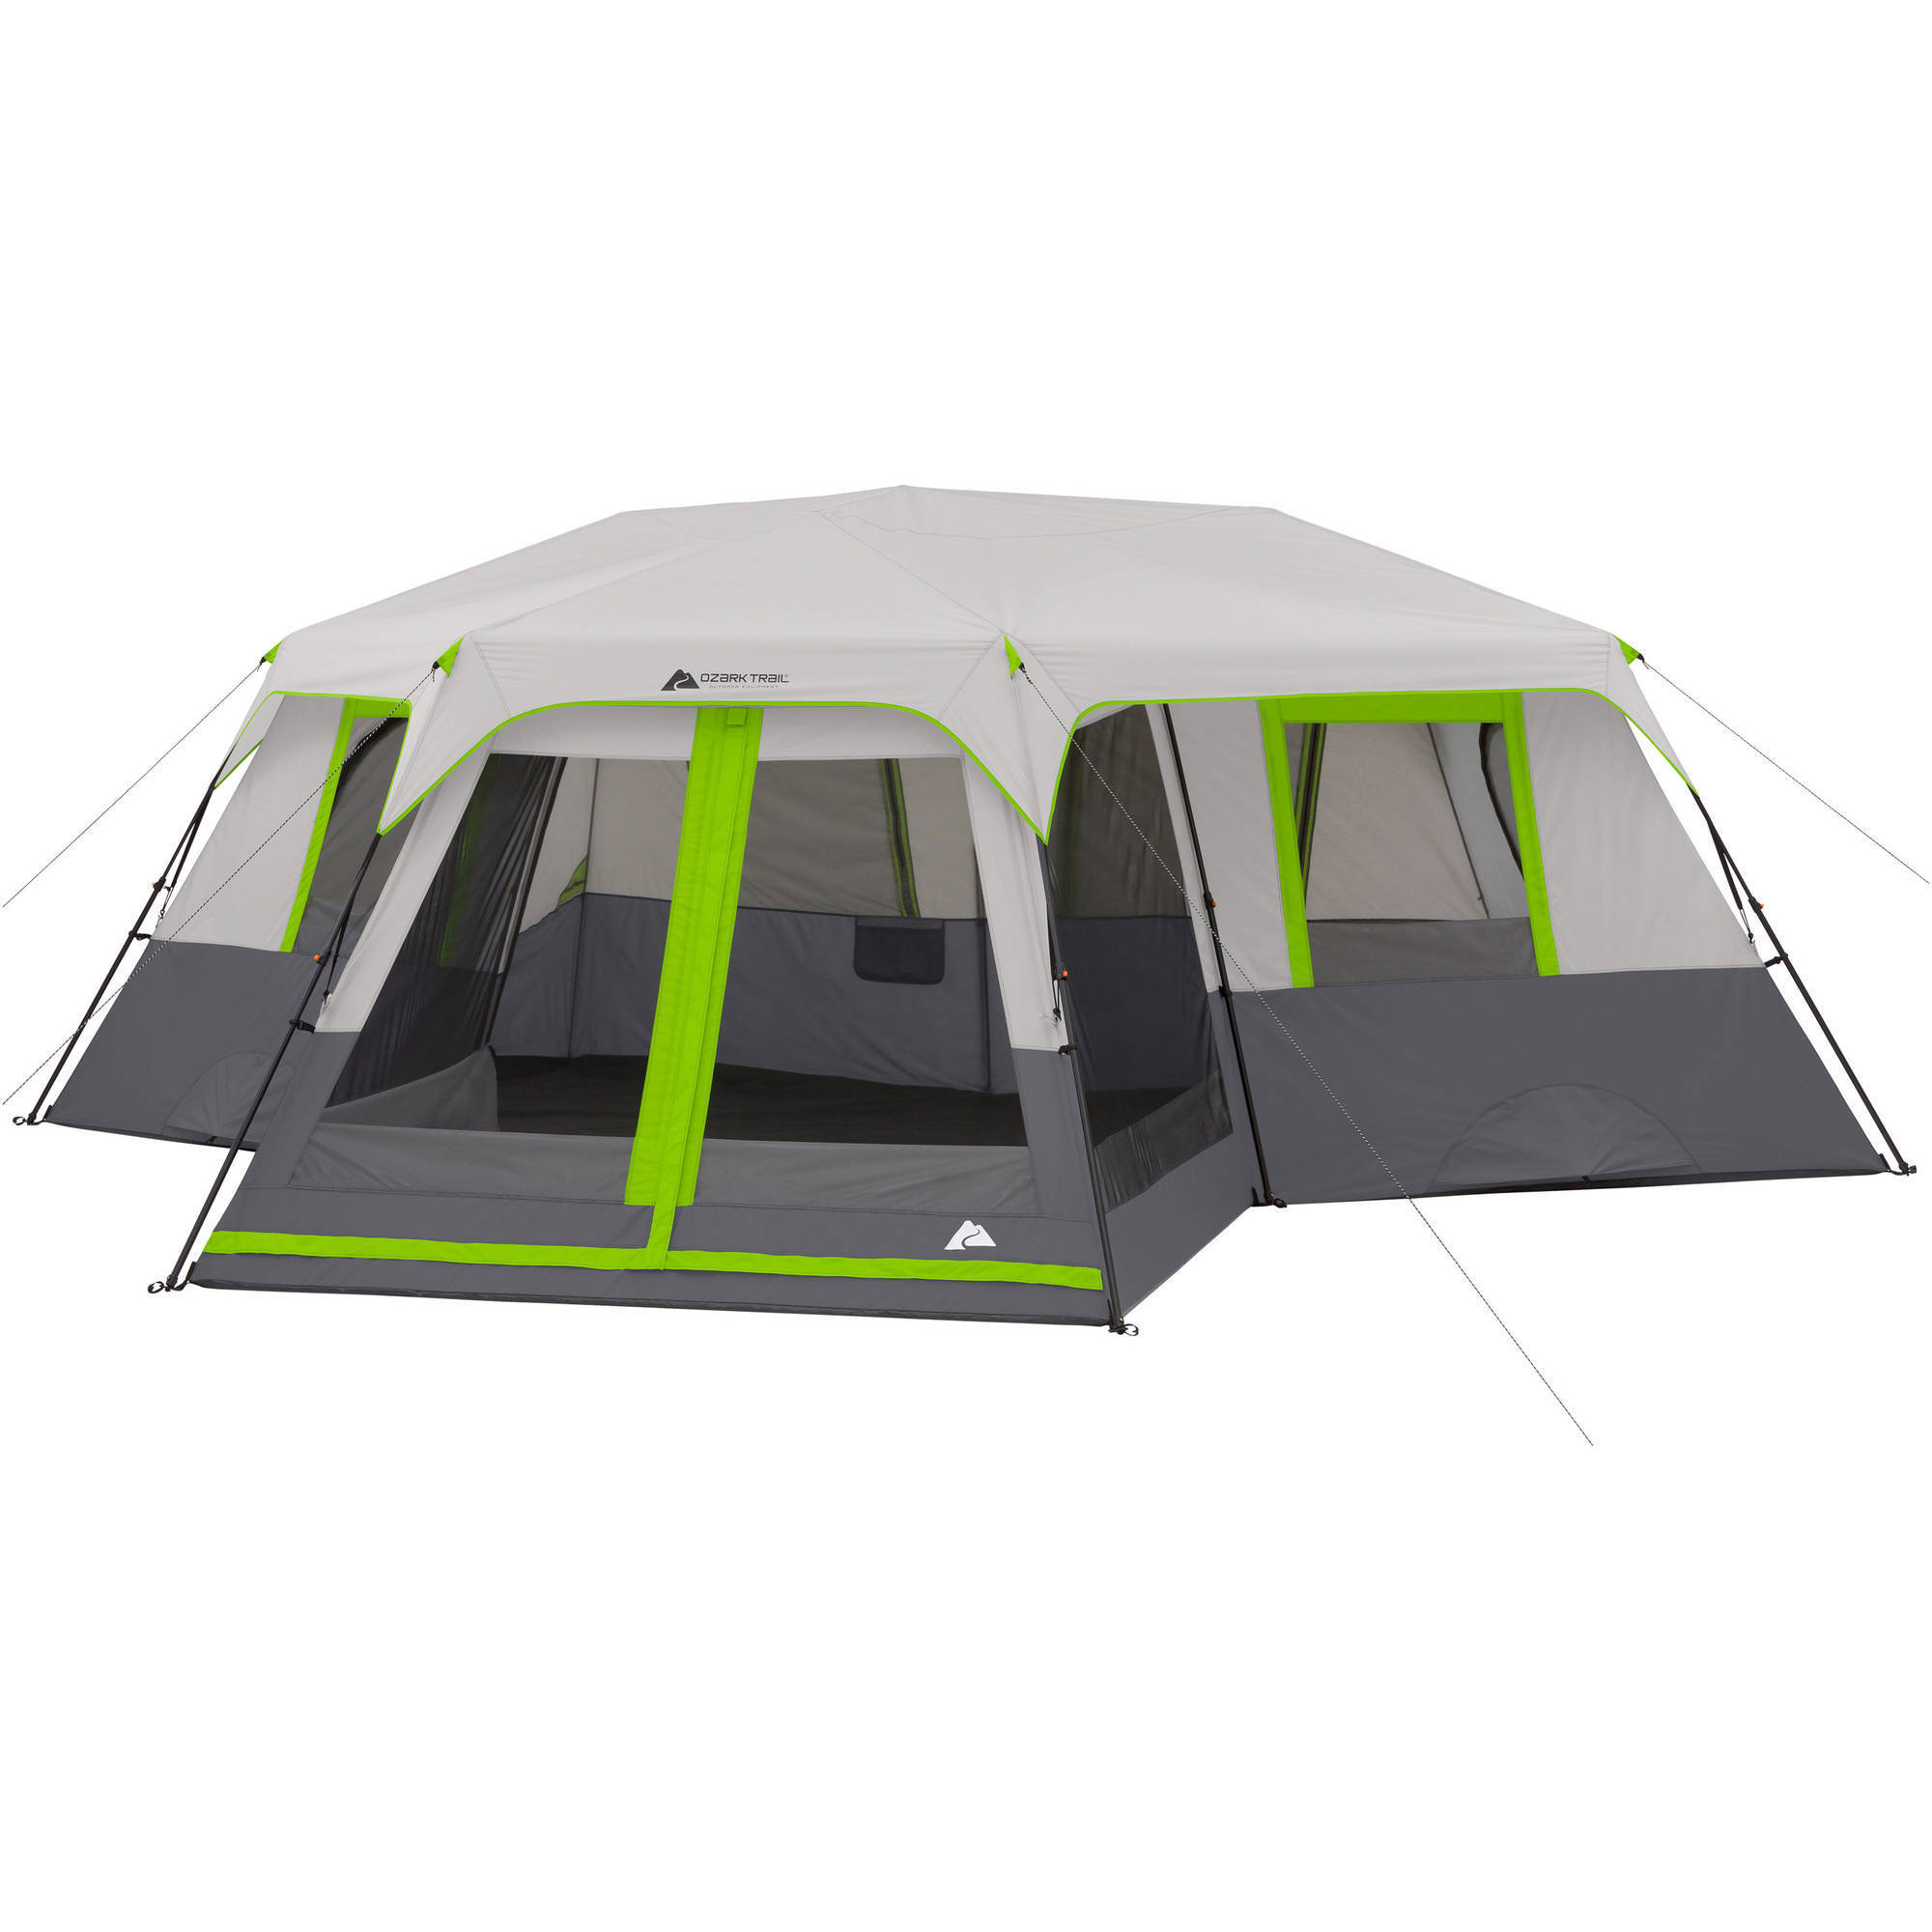 Ozark Trail 12-Person 3 Room Instant Cabin Tent with Screen Room  sc 1 st  Walmart & Ozark Trail 12-Person 3 Room Instant Cabin Tent with Screen Room ...